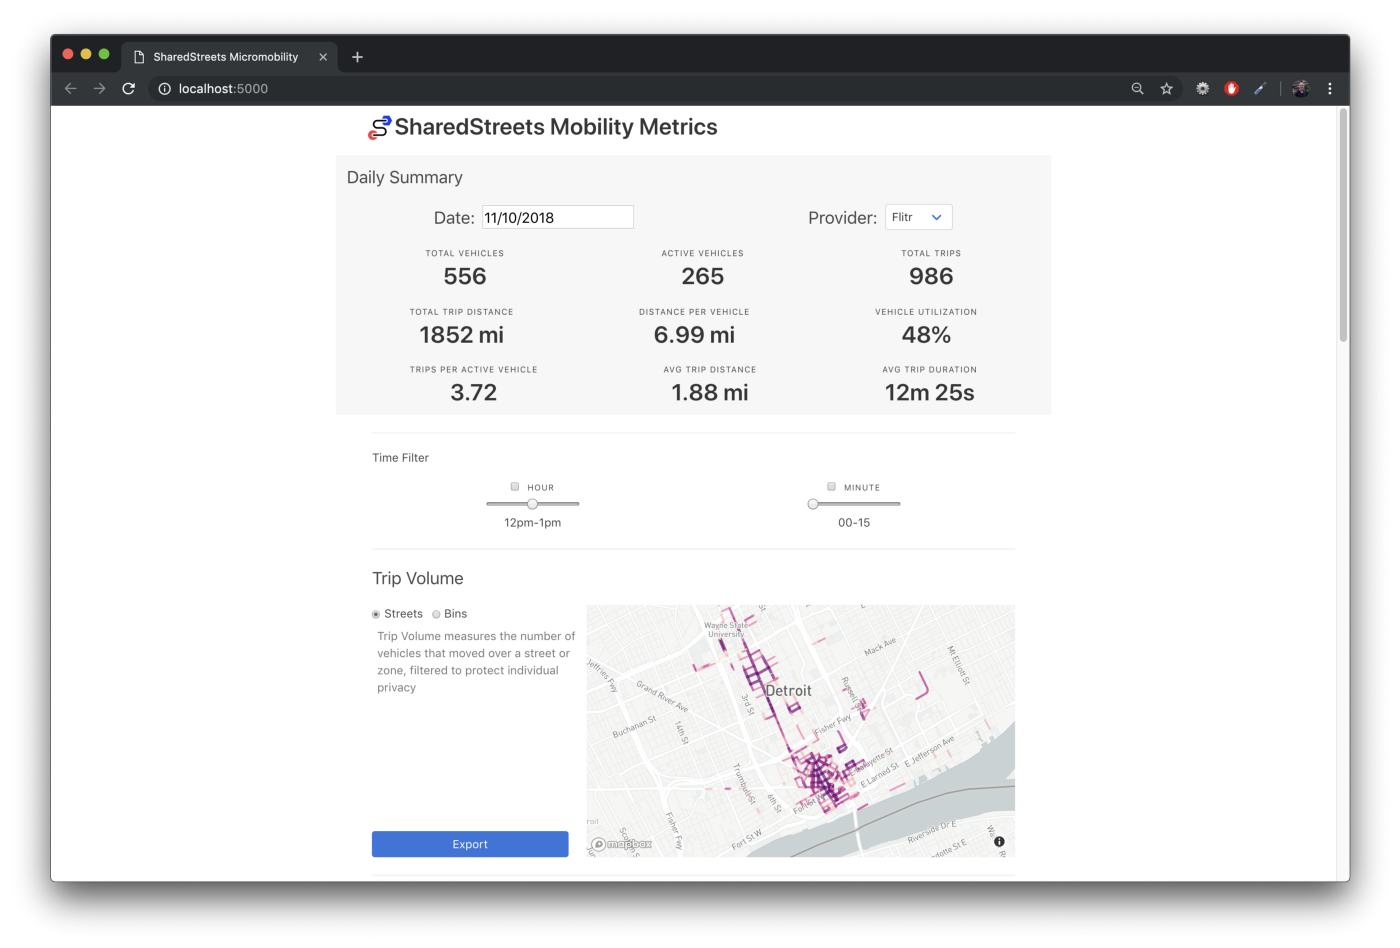 Introducing SharedStreets Mobility Metrics!